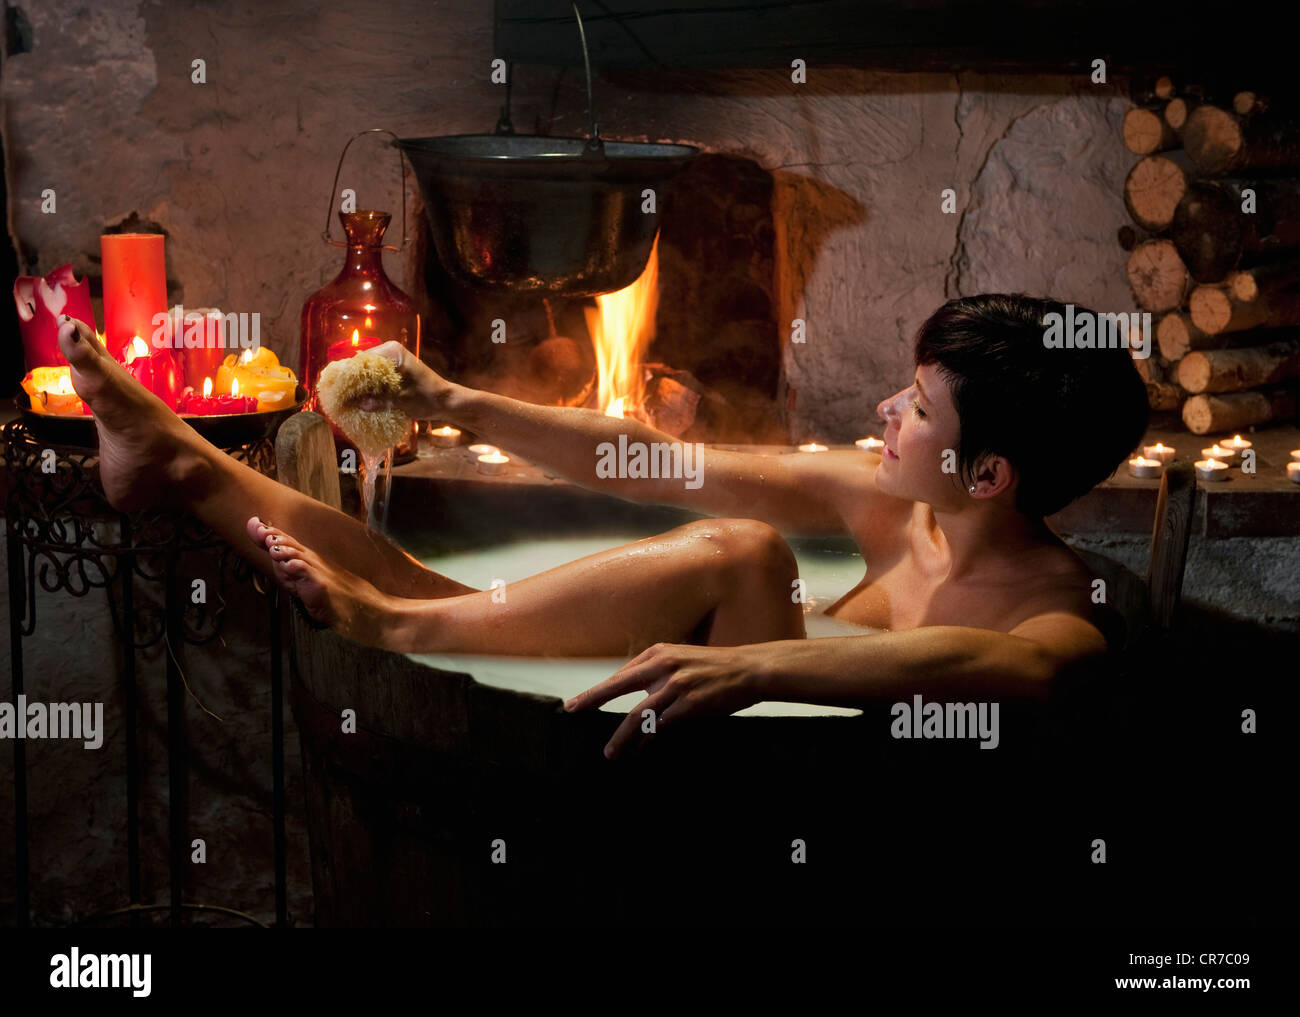 Austria, Salzburg County, Young woman taking bath in wooden tub - Stock Image